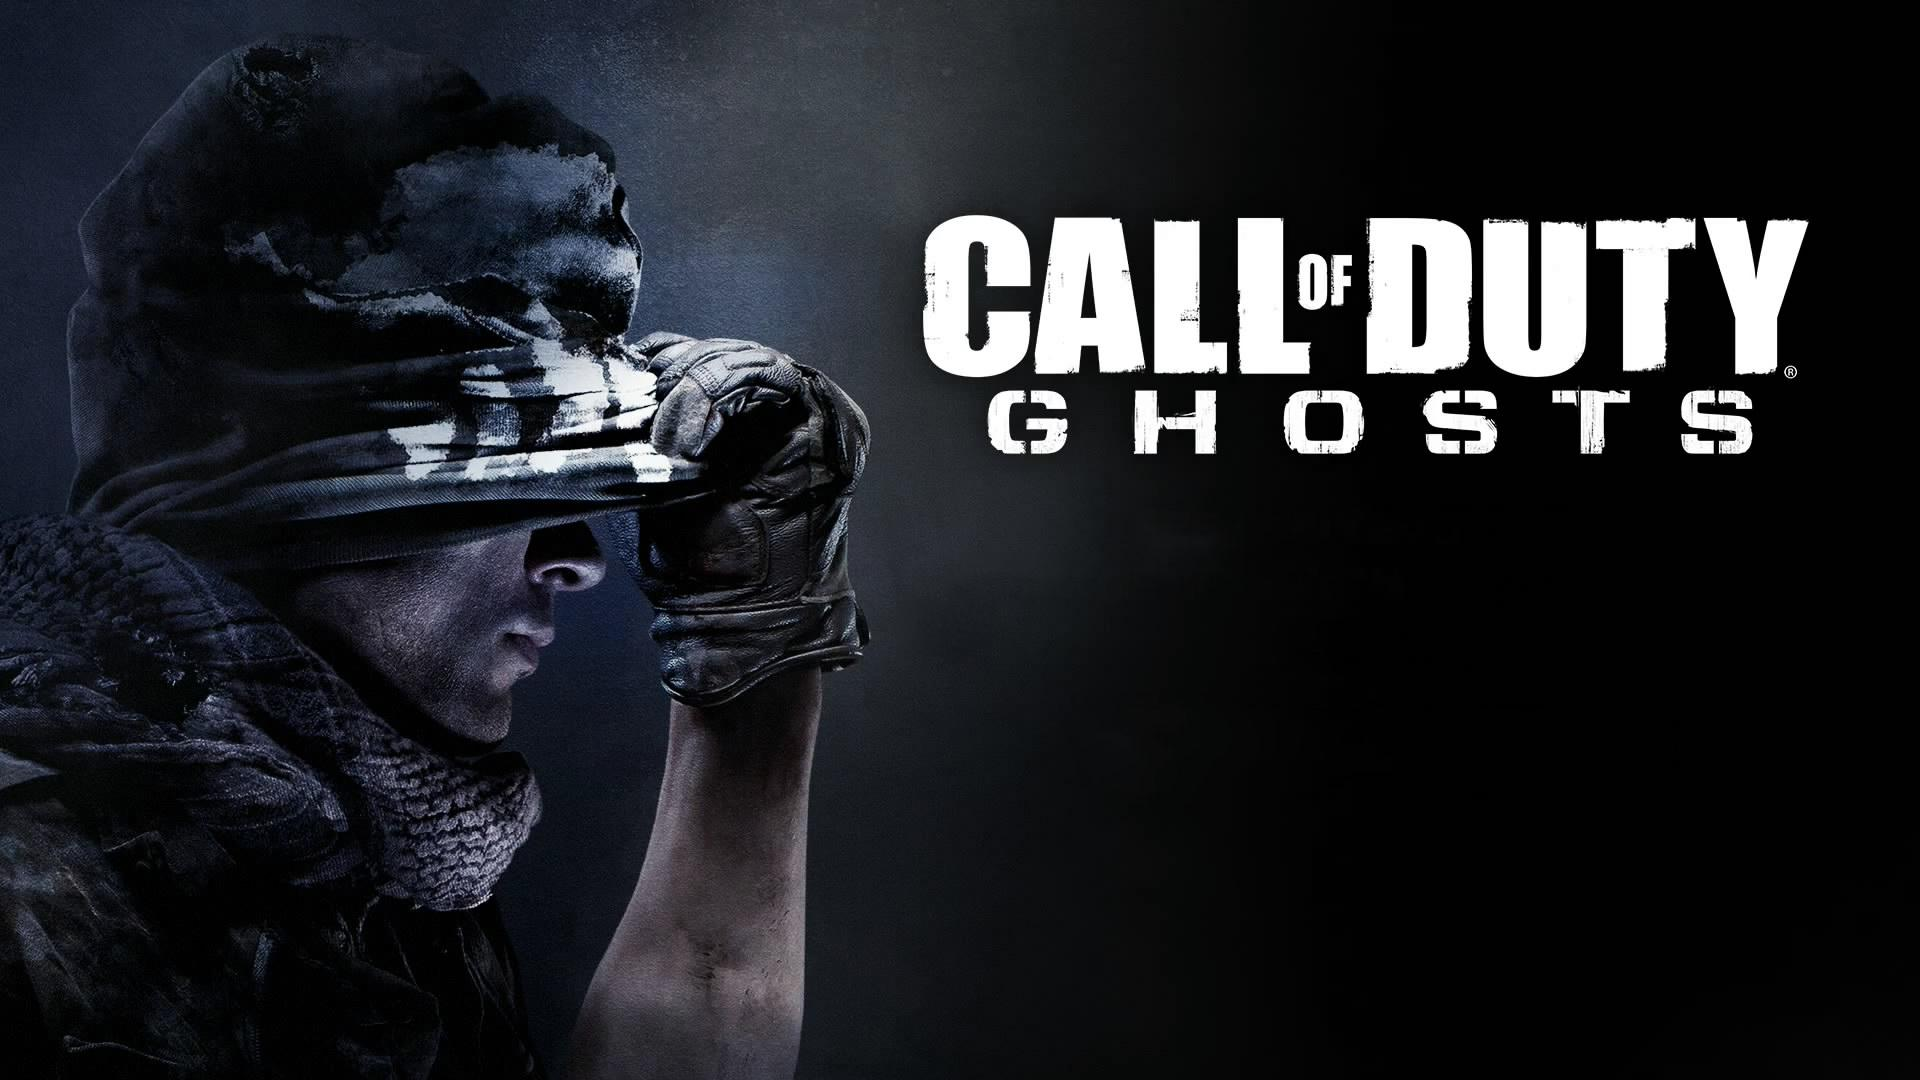 S&S; News: Call of Duty: Ghosts Uses Same Engine, Just Upgraded